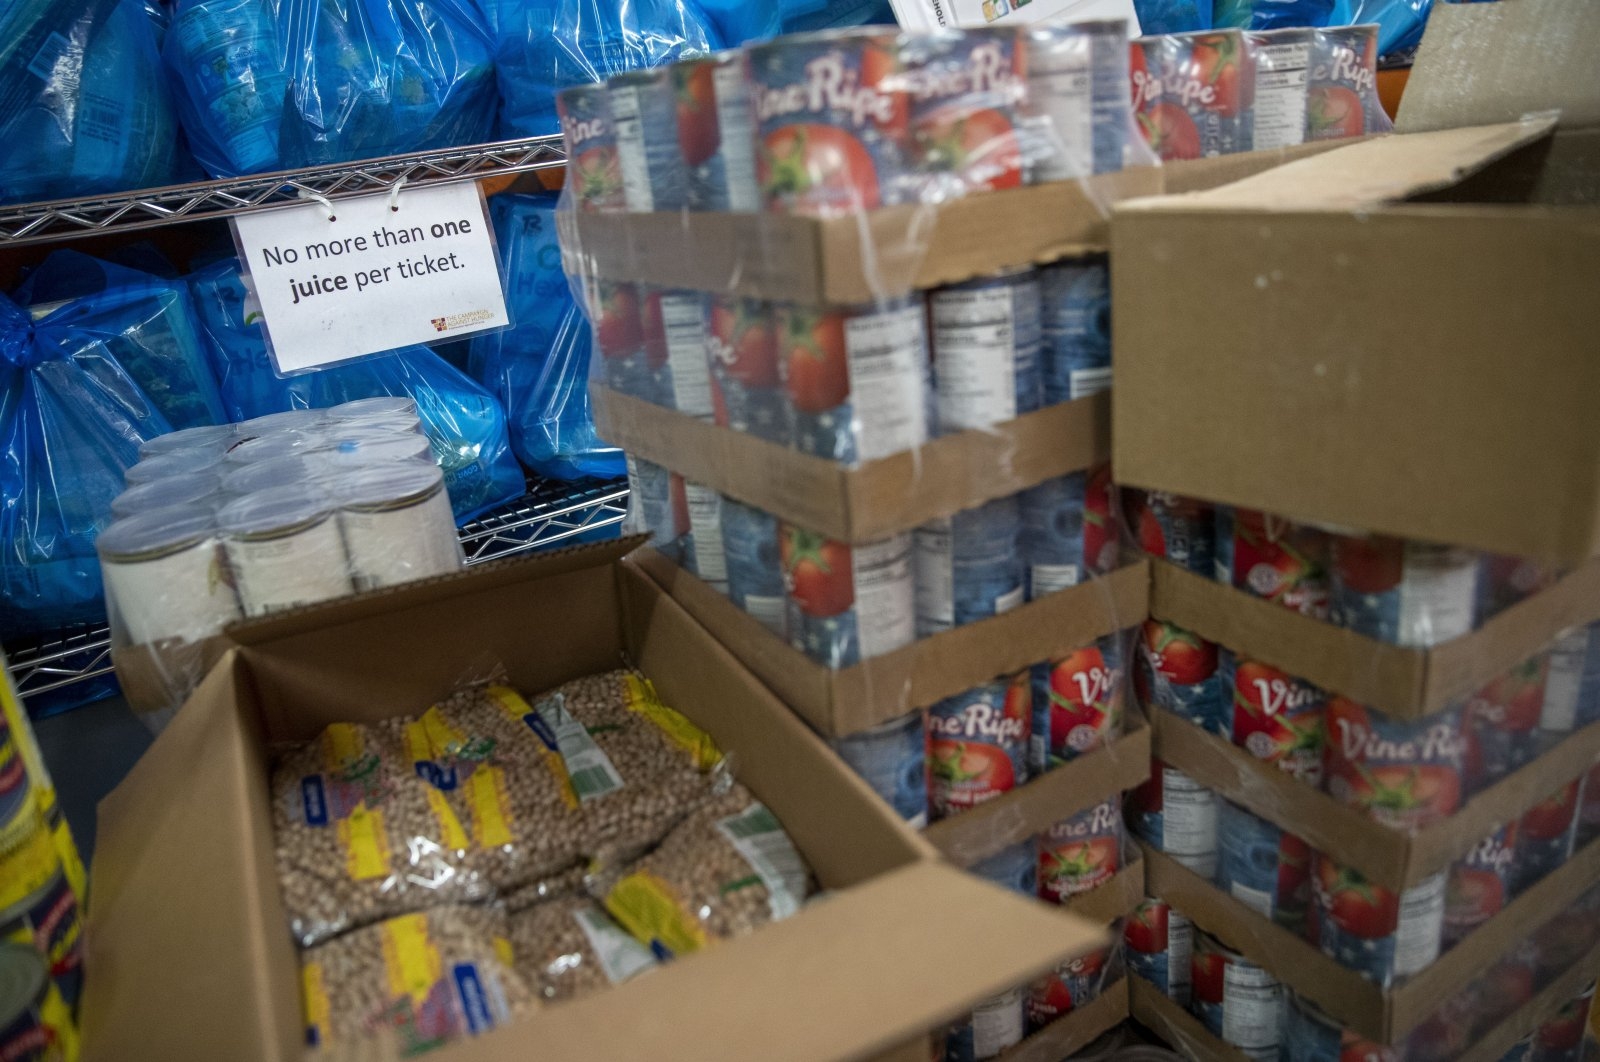 Groceries are stacked in a storage area at The Campaign Against Hunger food pantry, Thursday, April 16, 2020, in the Bedford-Stuyvesant neighborhood of the Brooklyn borough of New York. (AP Photo)